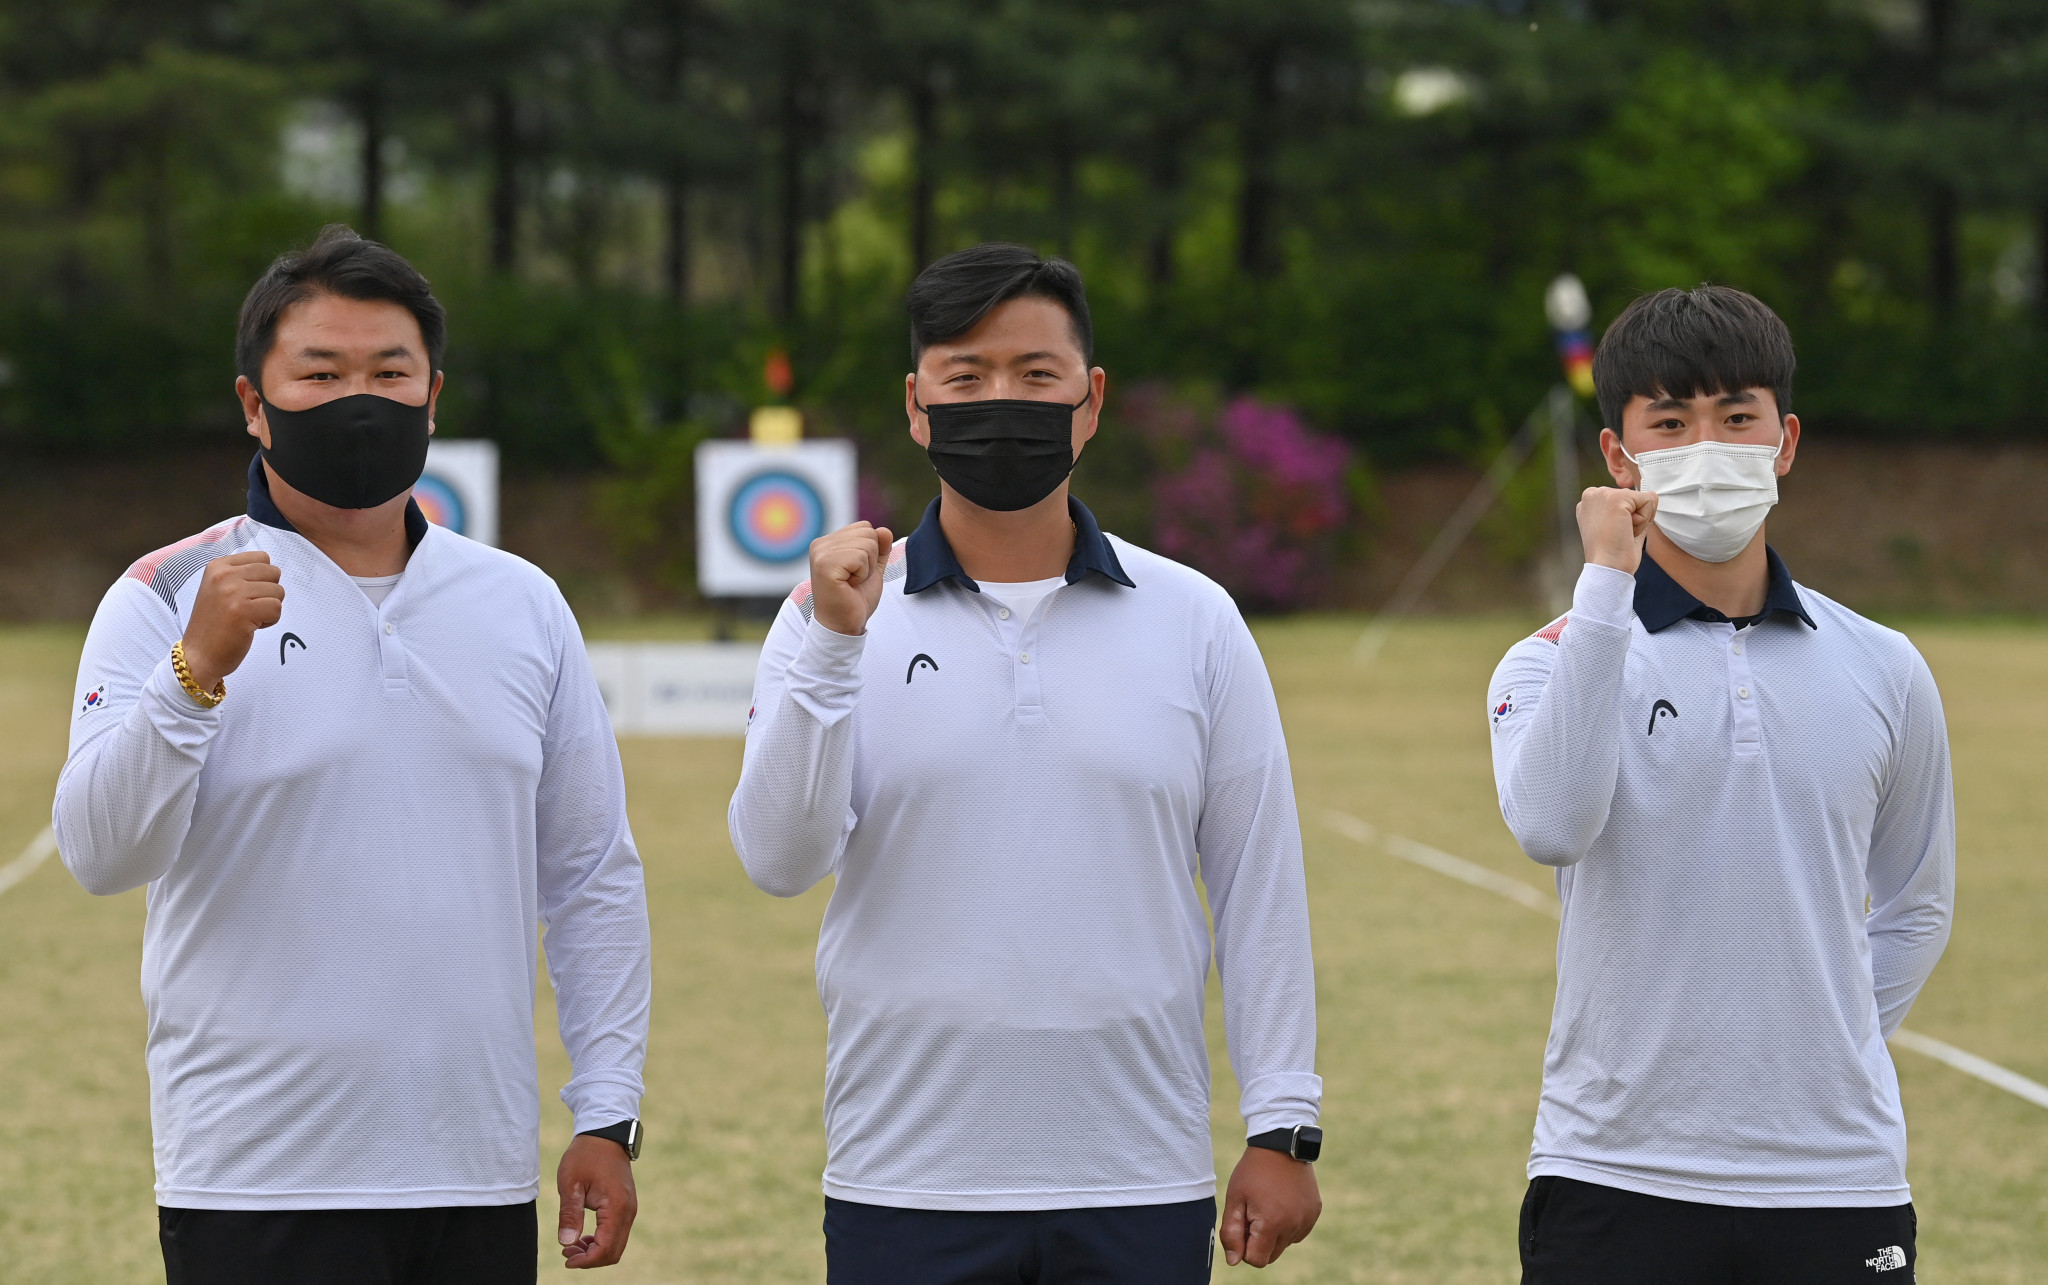 Gold medallists Oh and Kim joined by rookies in South Korean Olympic archery team